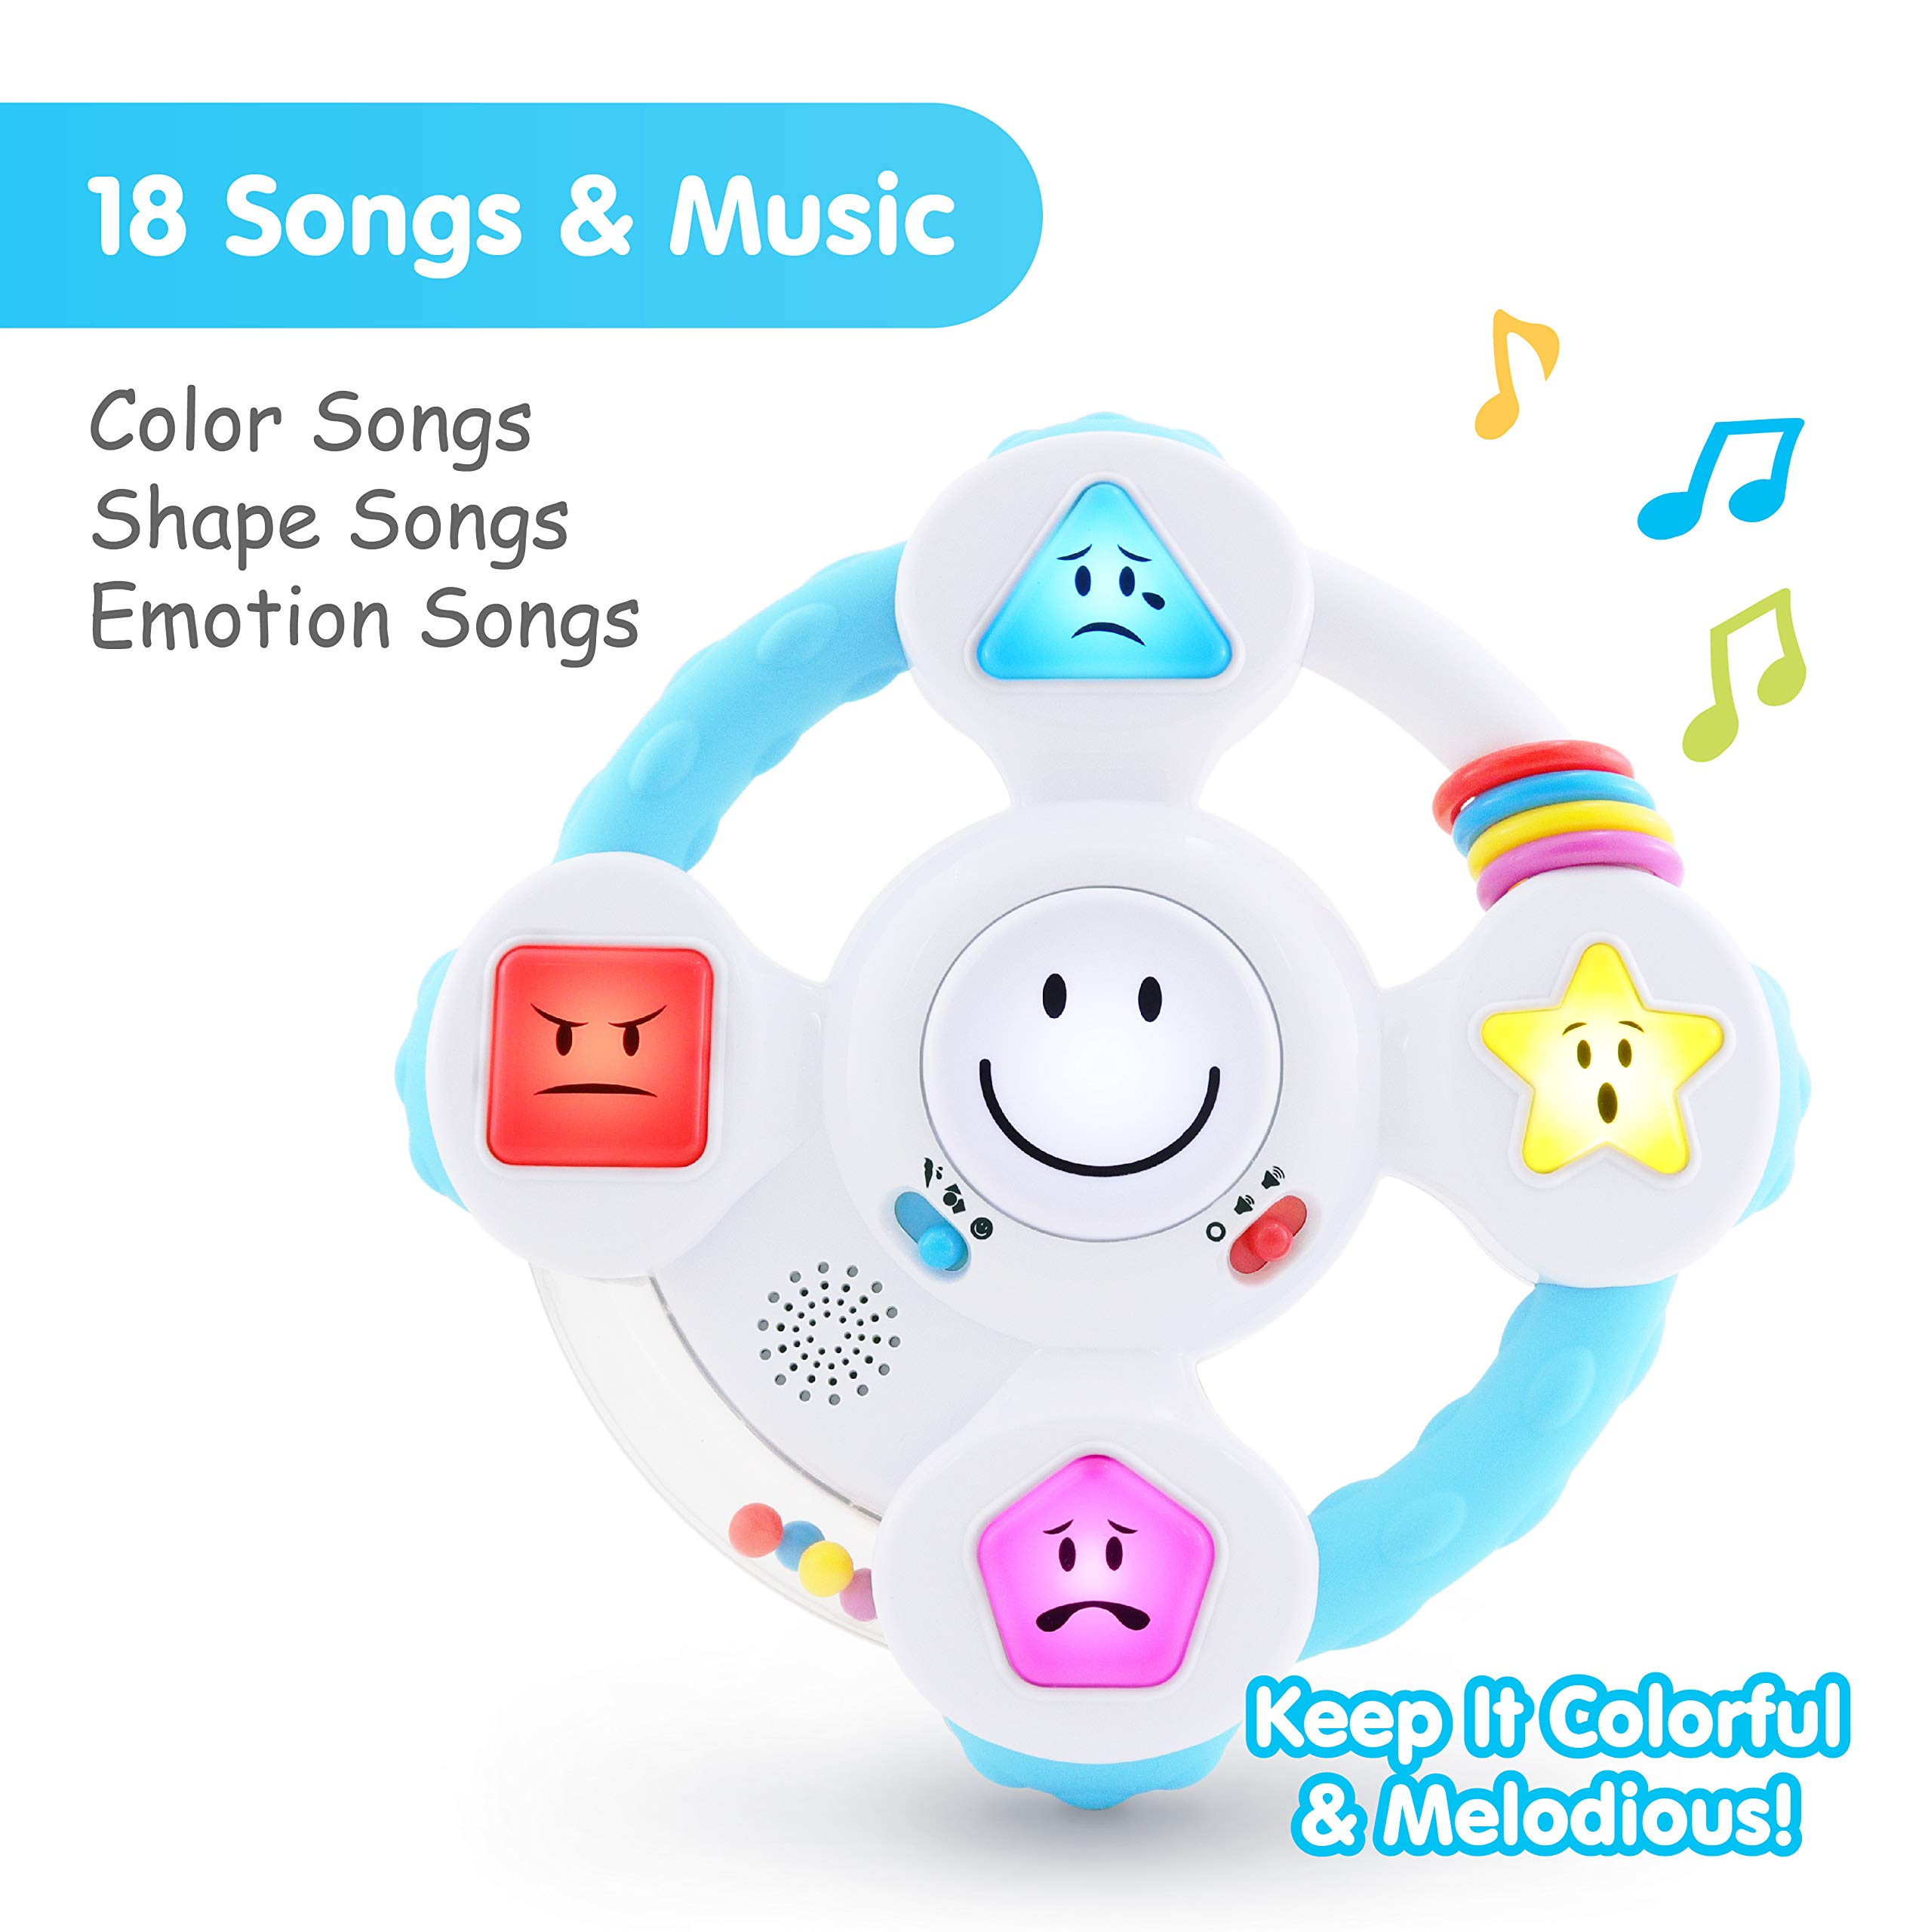 BEST LEARNING My Spin & Learn Steering Wheel - Interactive Educational Light-Up Toddler Toys for 6-36 Months Old Infants & Toddlers - Colors, Shapes, Emotions & Music Game for Babies by BEST LEARNING (Image #4)